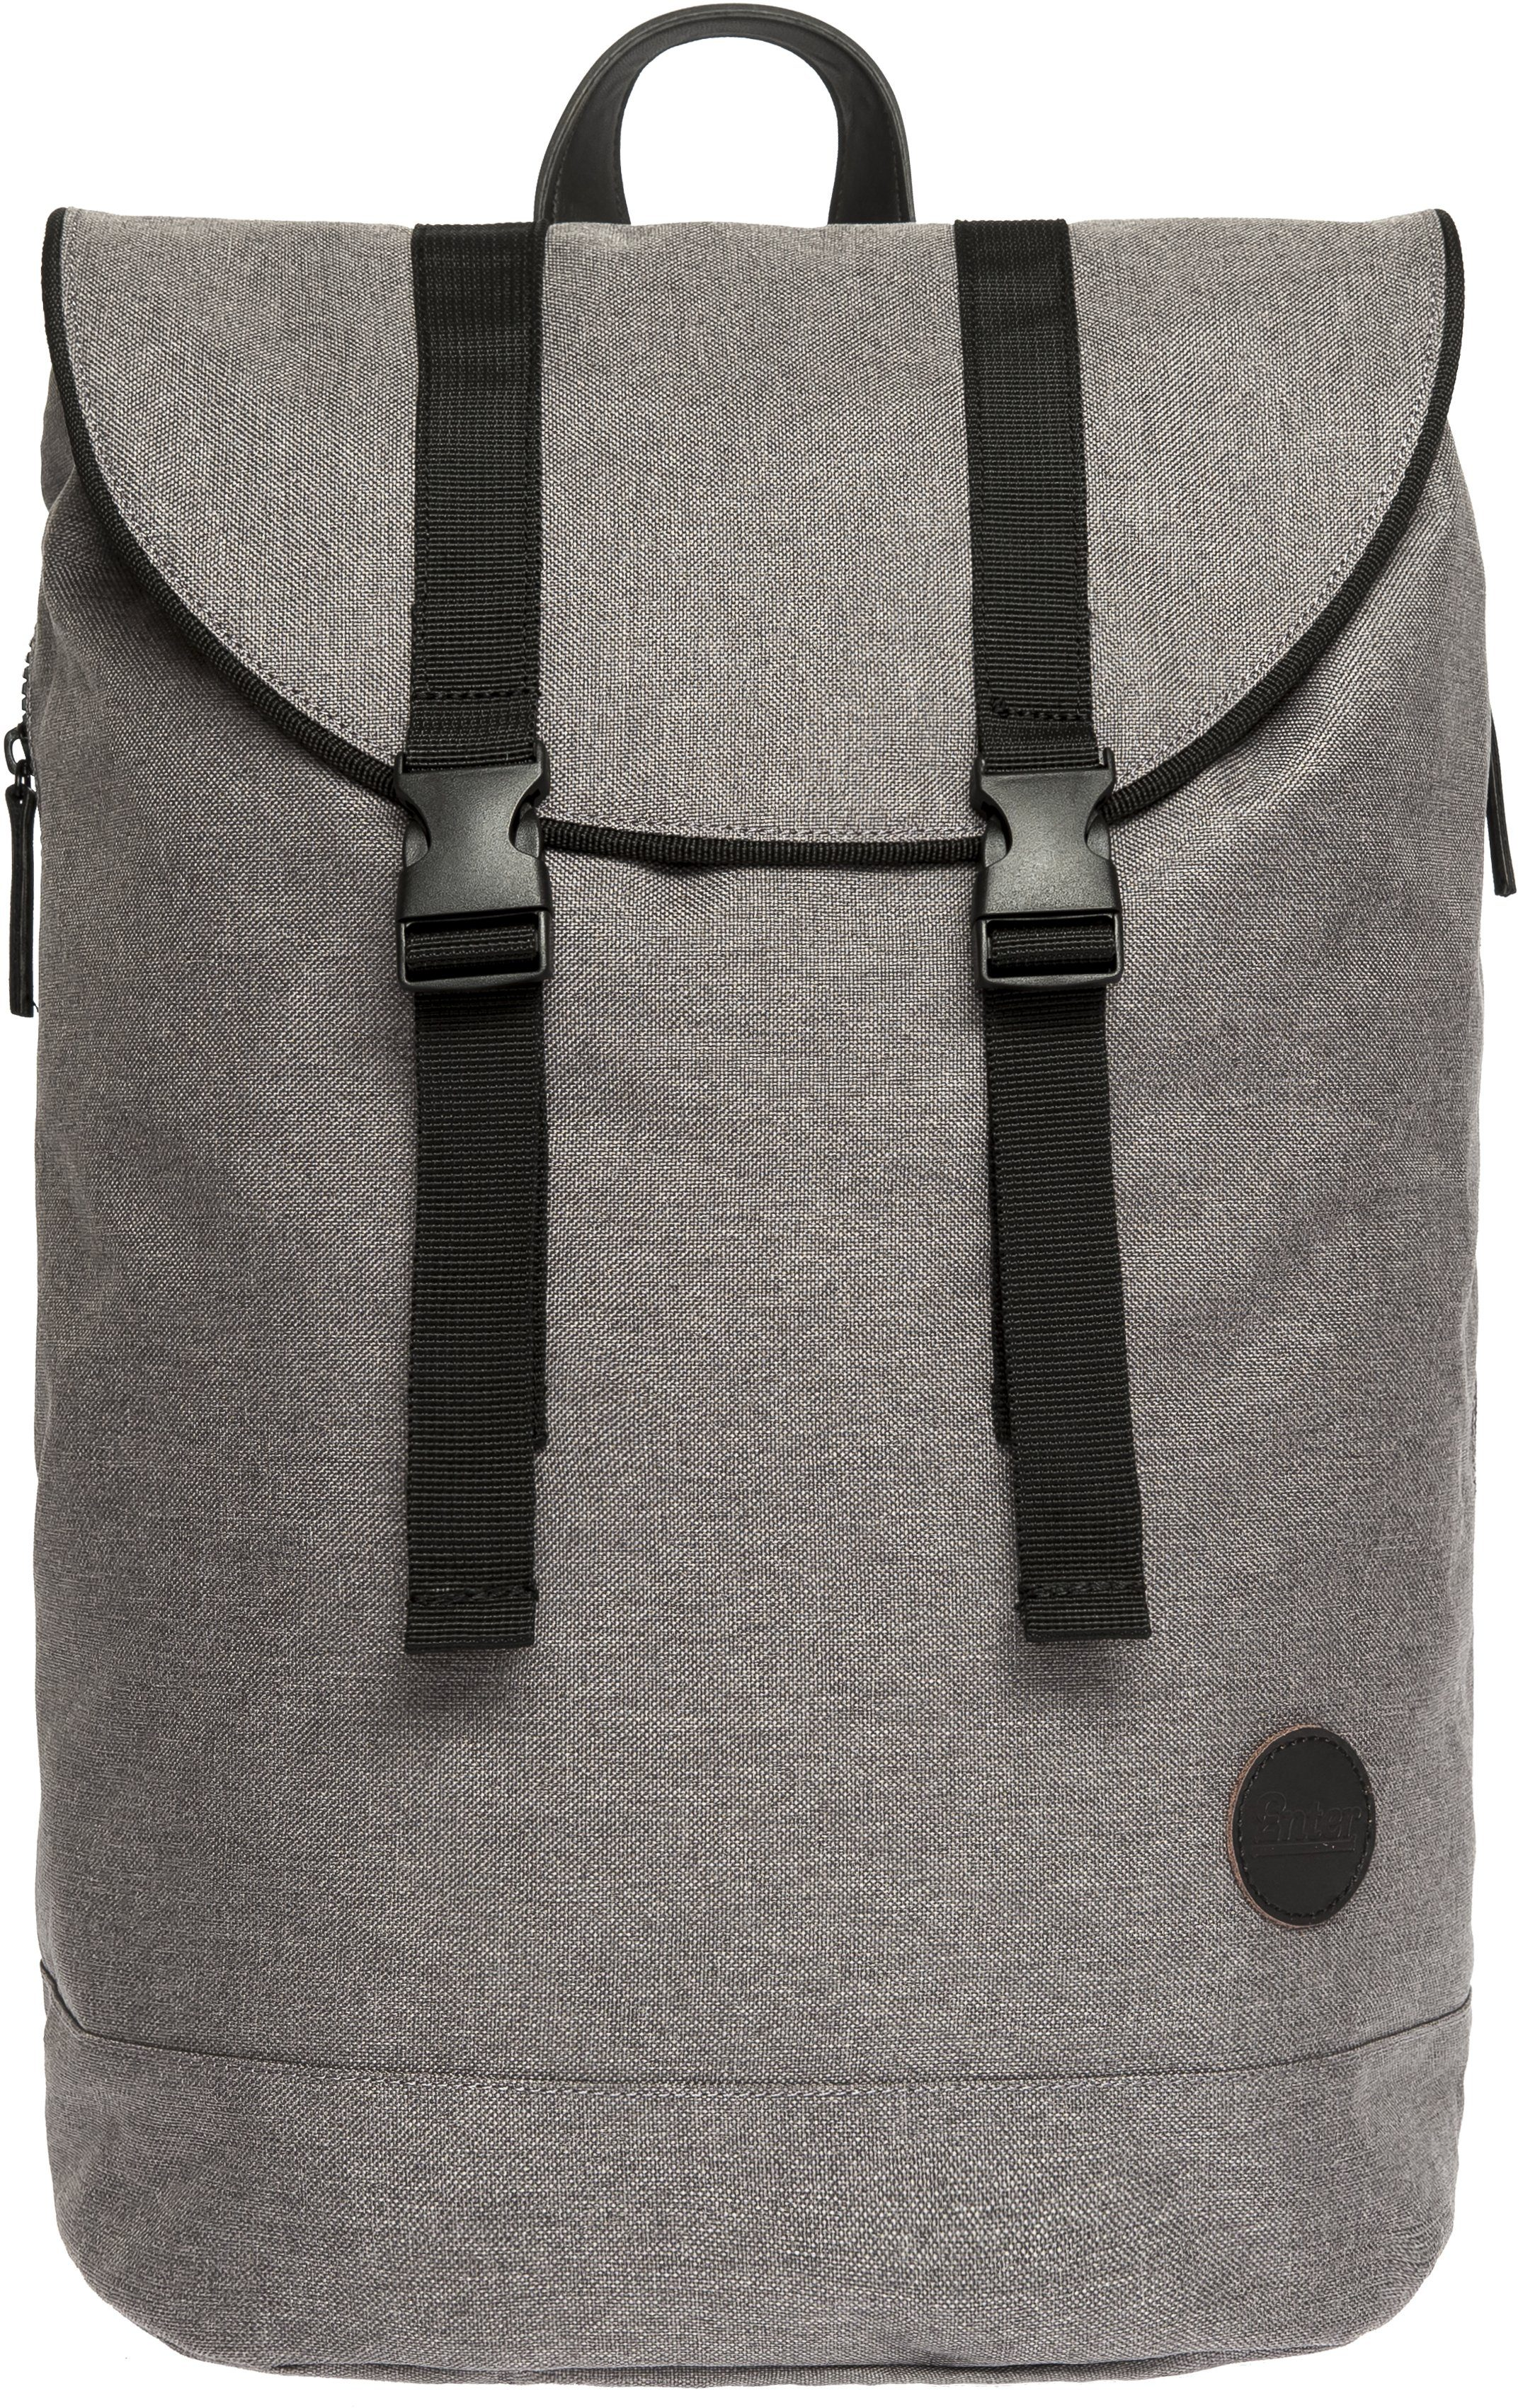 Enter Rucksack mit Kordelzug, »Day Hiker Backpack, Melange Grey«